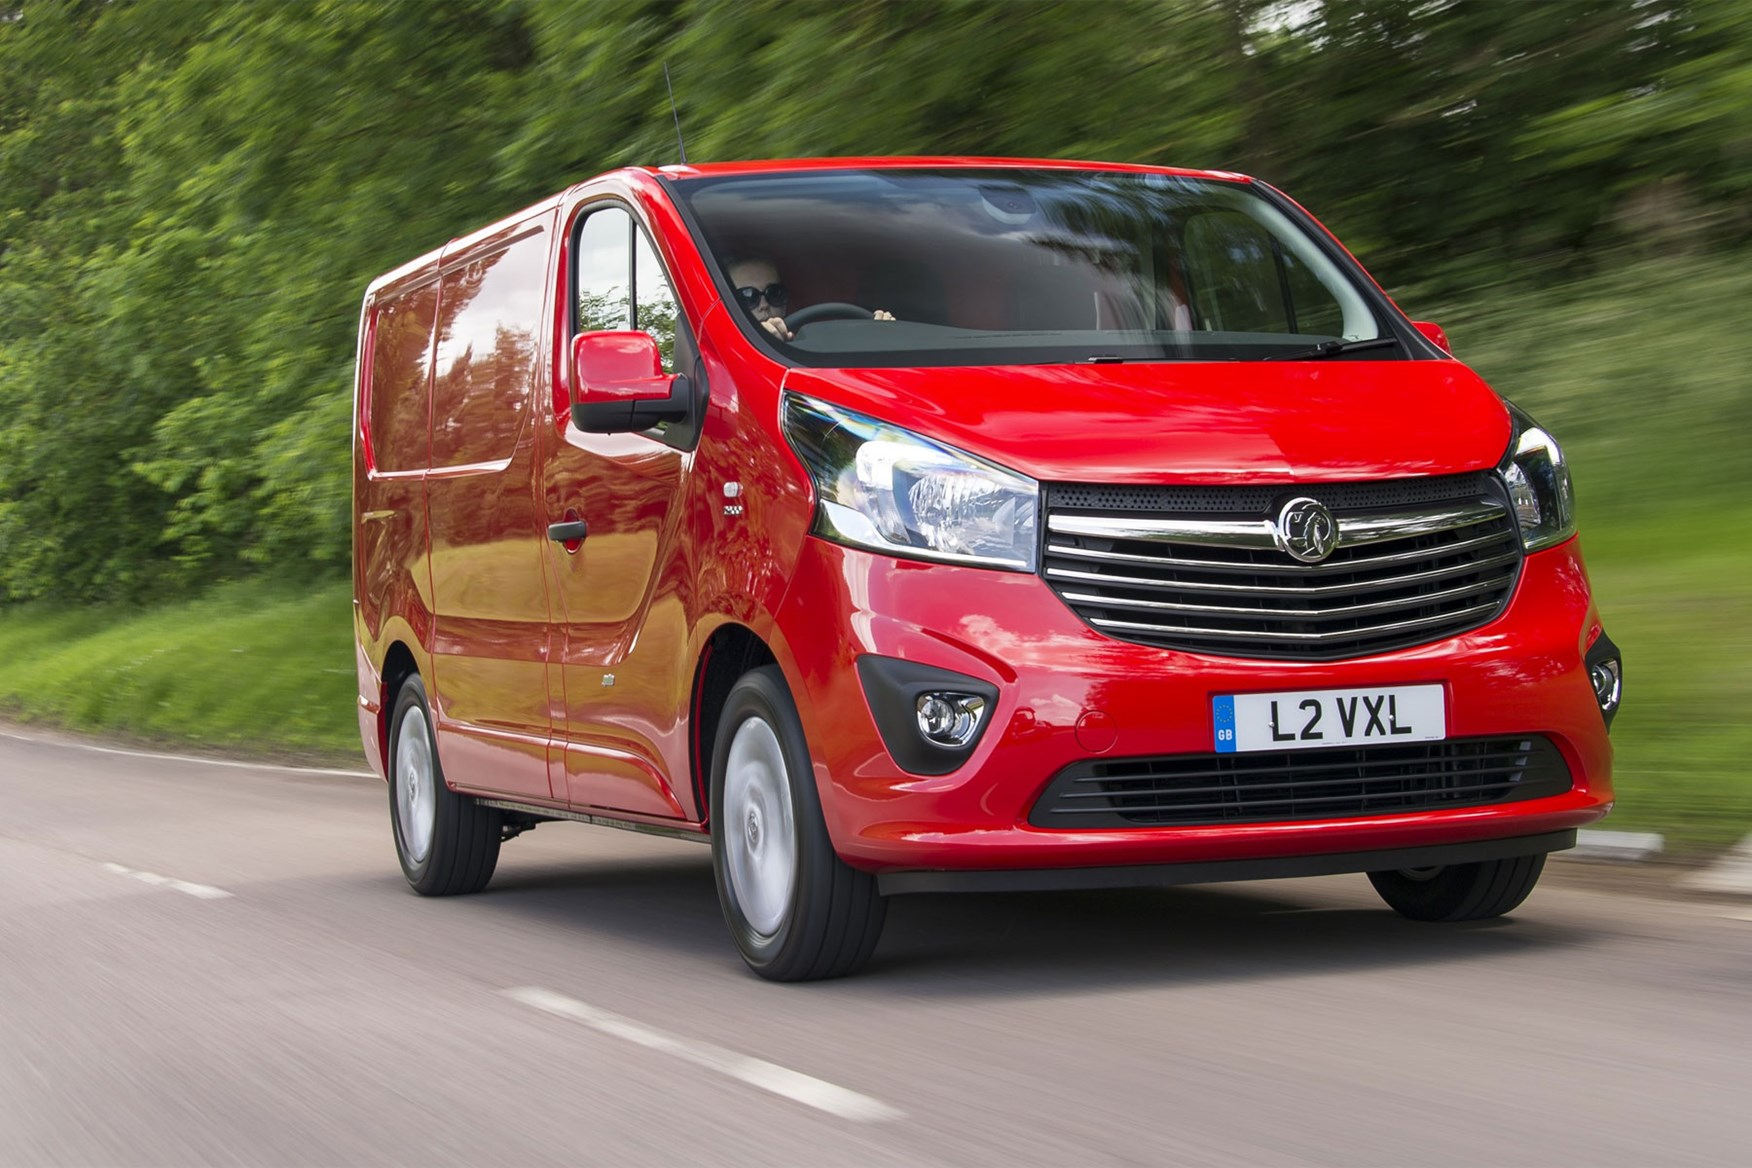 Astounding Vauxhall Vivaro Van Review 2014 On Parkers Wiring Digital Resources Indicompassionincorg